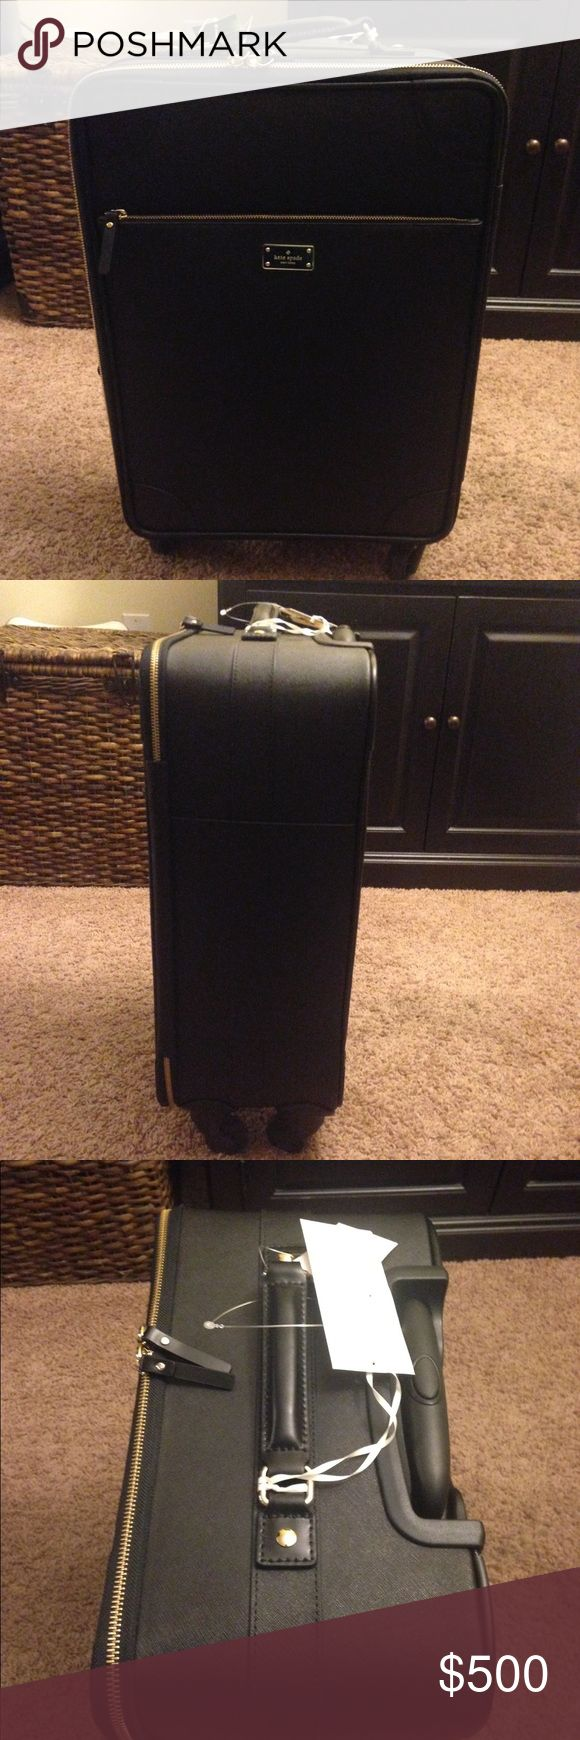 """Kate Spade carry on suitcase and/or luggage Brand new with tags. It has never been used. It's a four-wheel spinner that is an international carry-on approved suitcase. Dimensions are 22"""" x 14"""" x 8"""". Cute pink interior with Kate spade branded logo. It has an exterior zippered compartment. The interior has two zippered compartments and two pouches as well as straps to hold garments in place. kate spade Bags Travel Bags"""